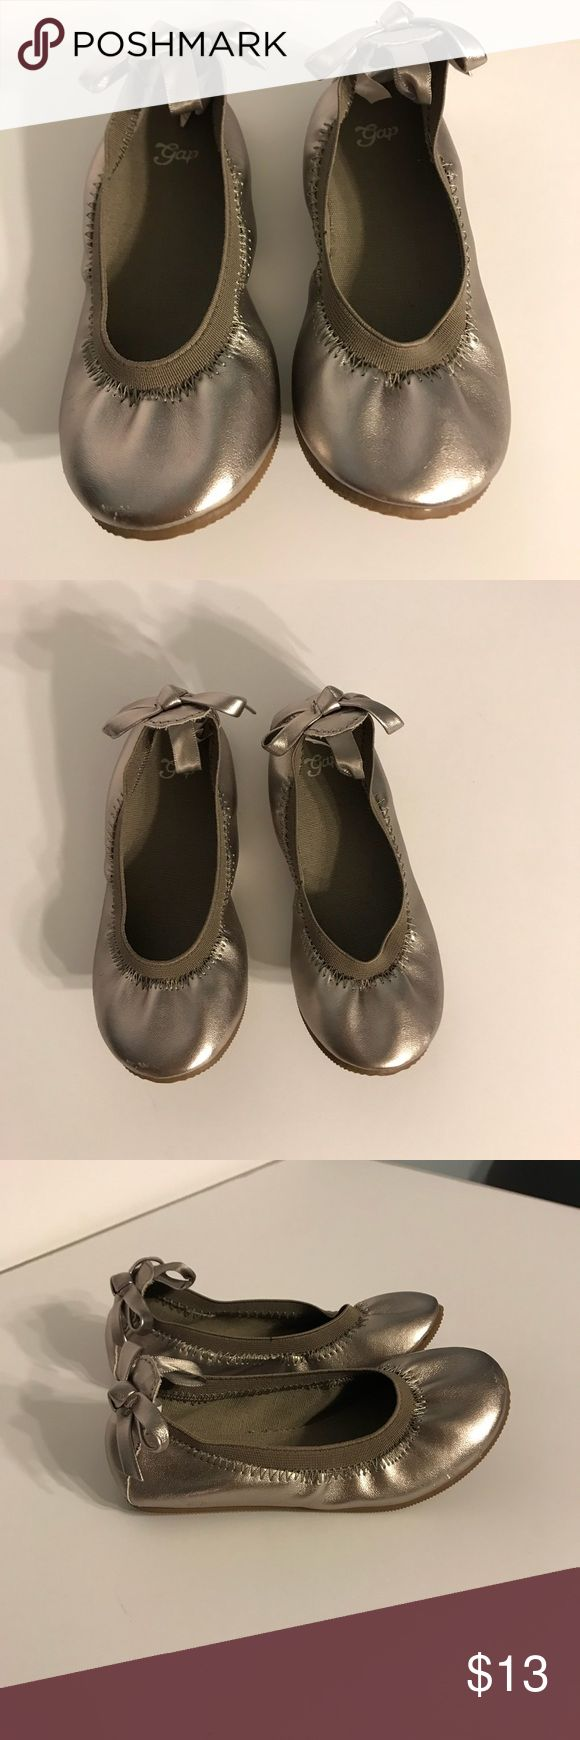 Gold Ballet Flat shoes Gold flat ballet shoes with bow GAP Shoes Dress Shoes